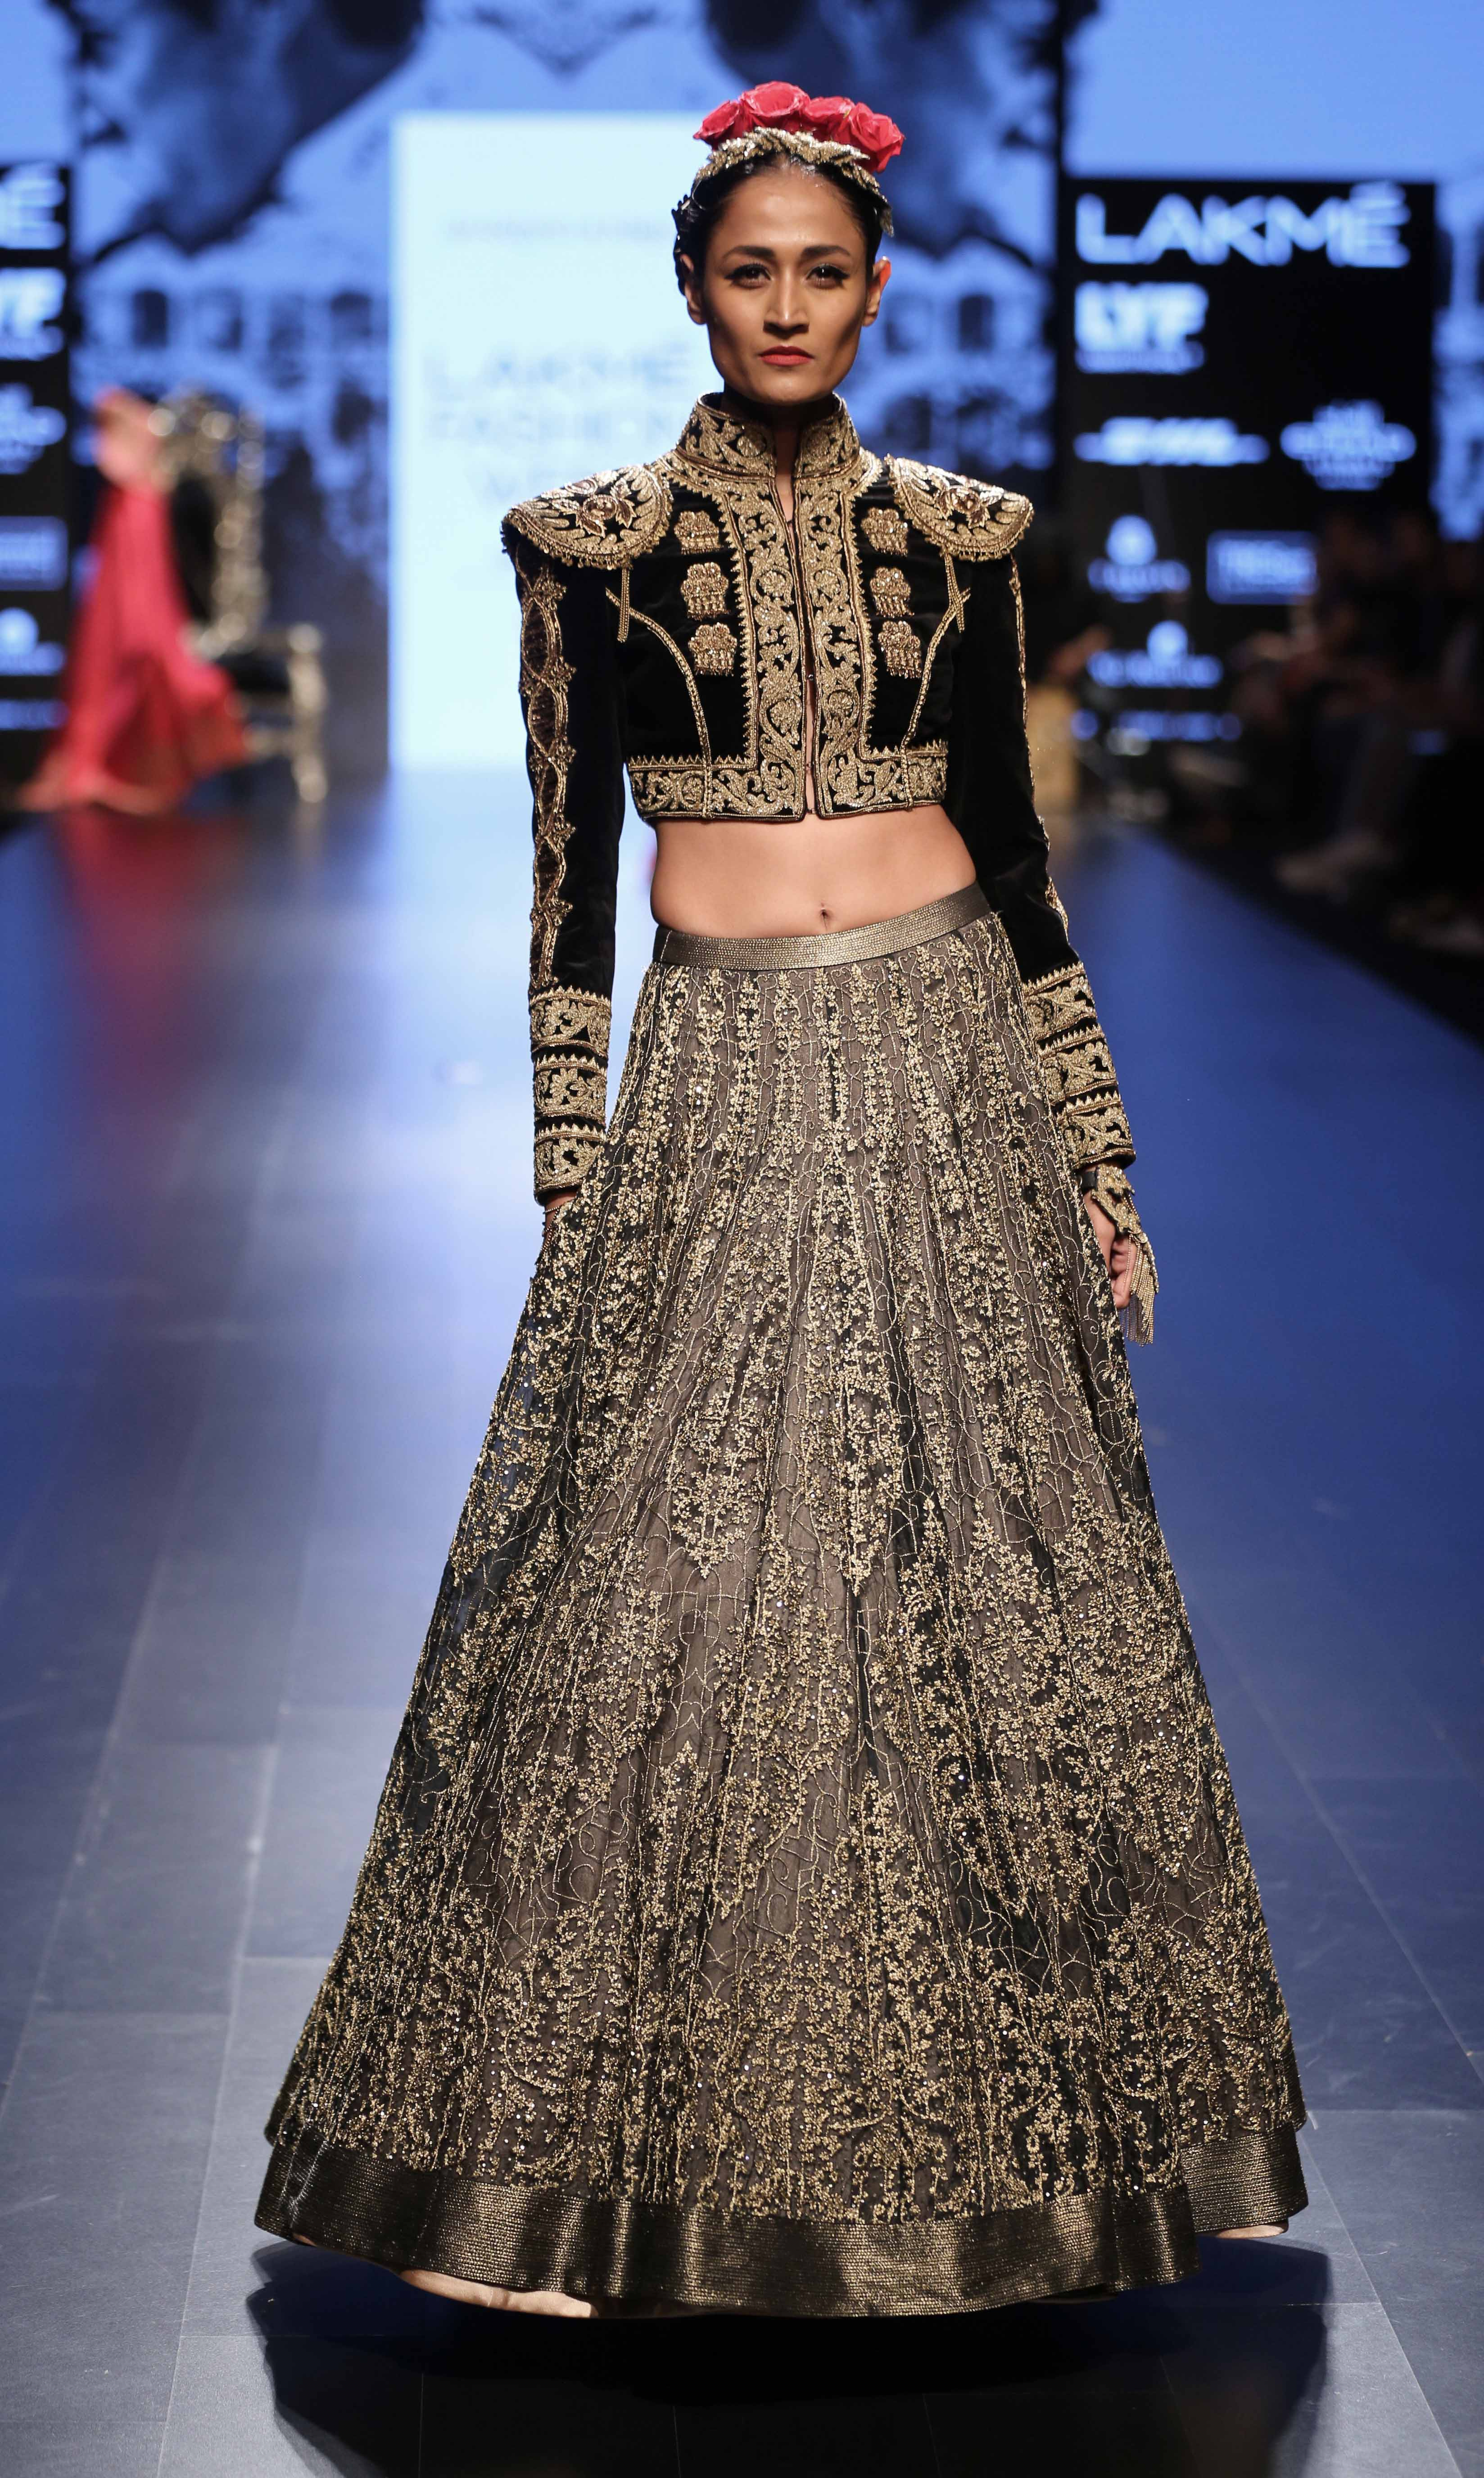 Shantanu and Nikhil - Lakmé Fashion Week Winter-Festive 2016